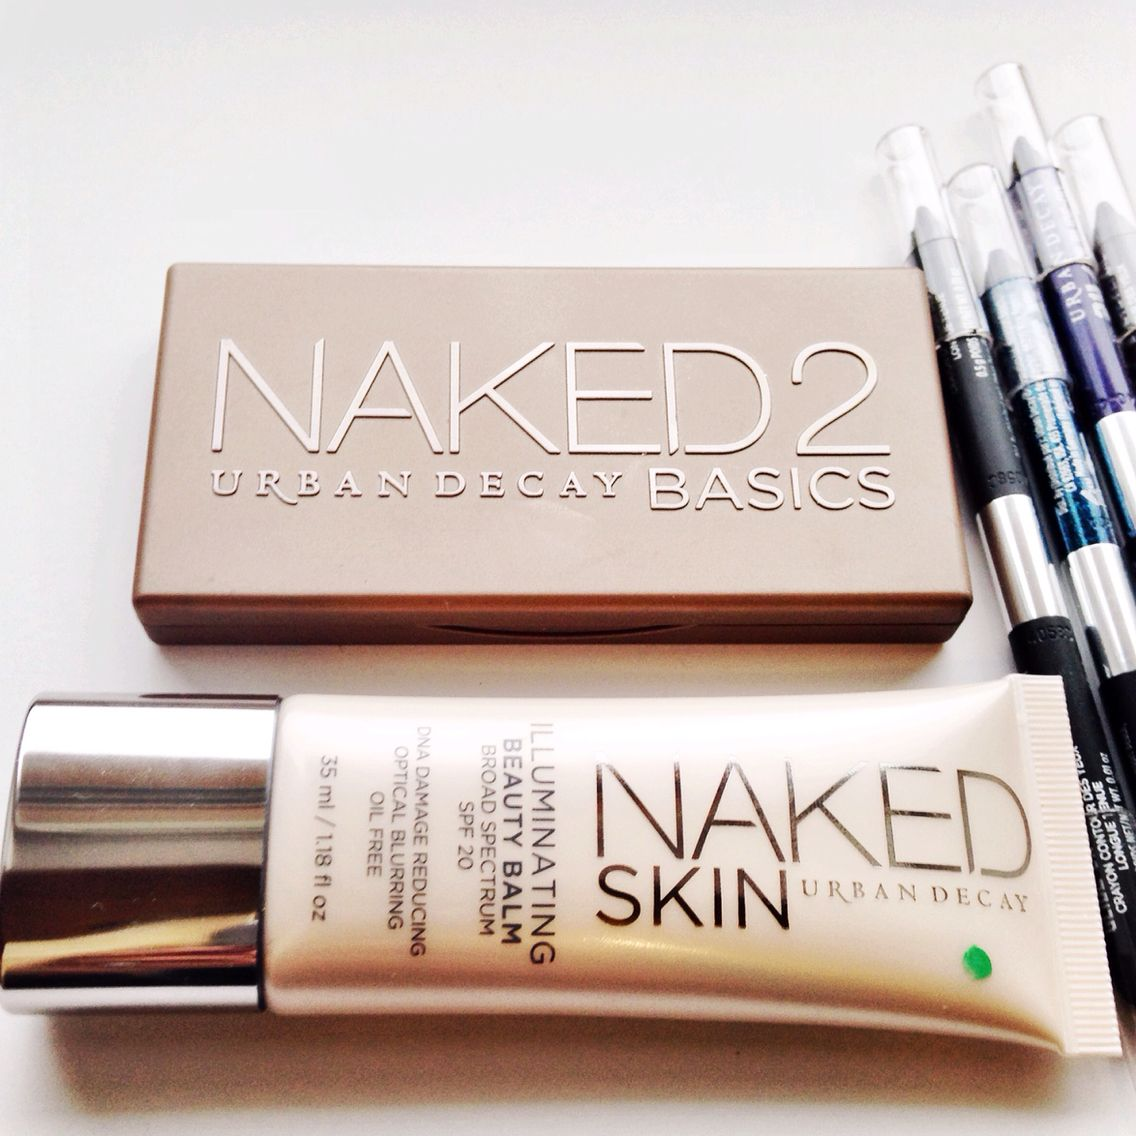 Urban decay favs tips for